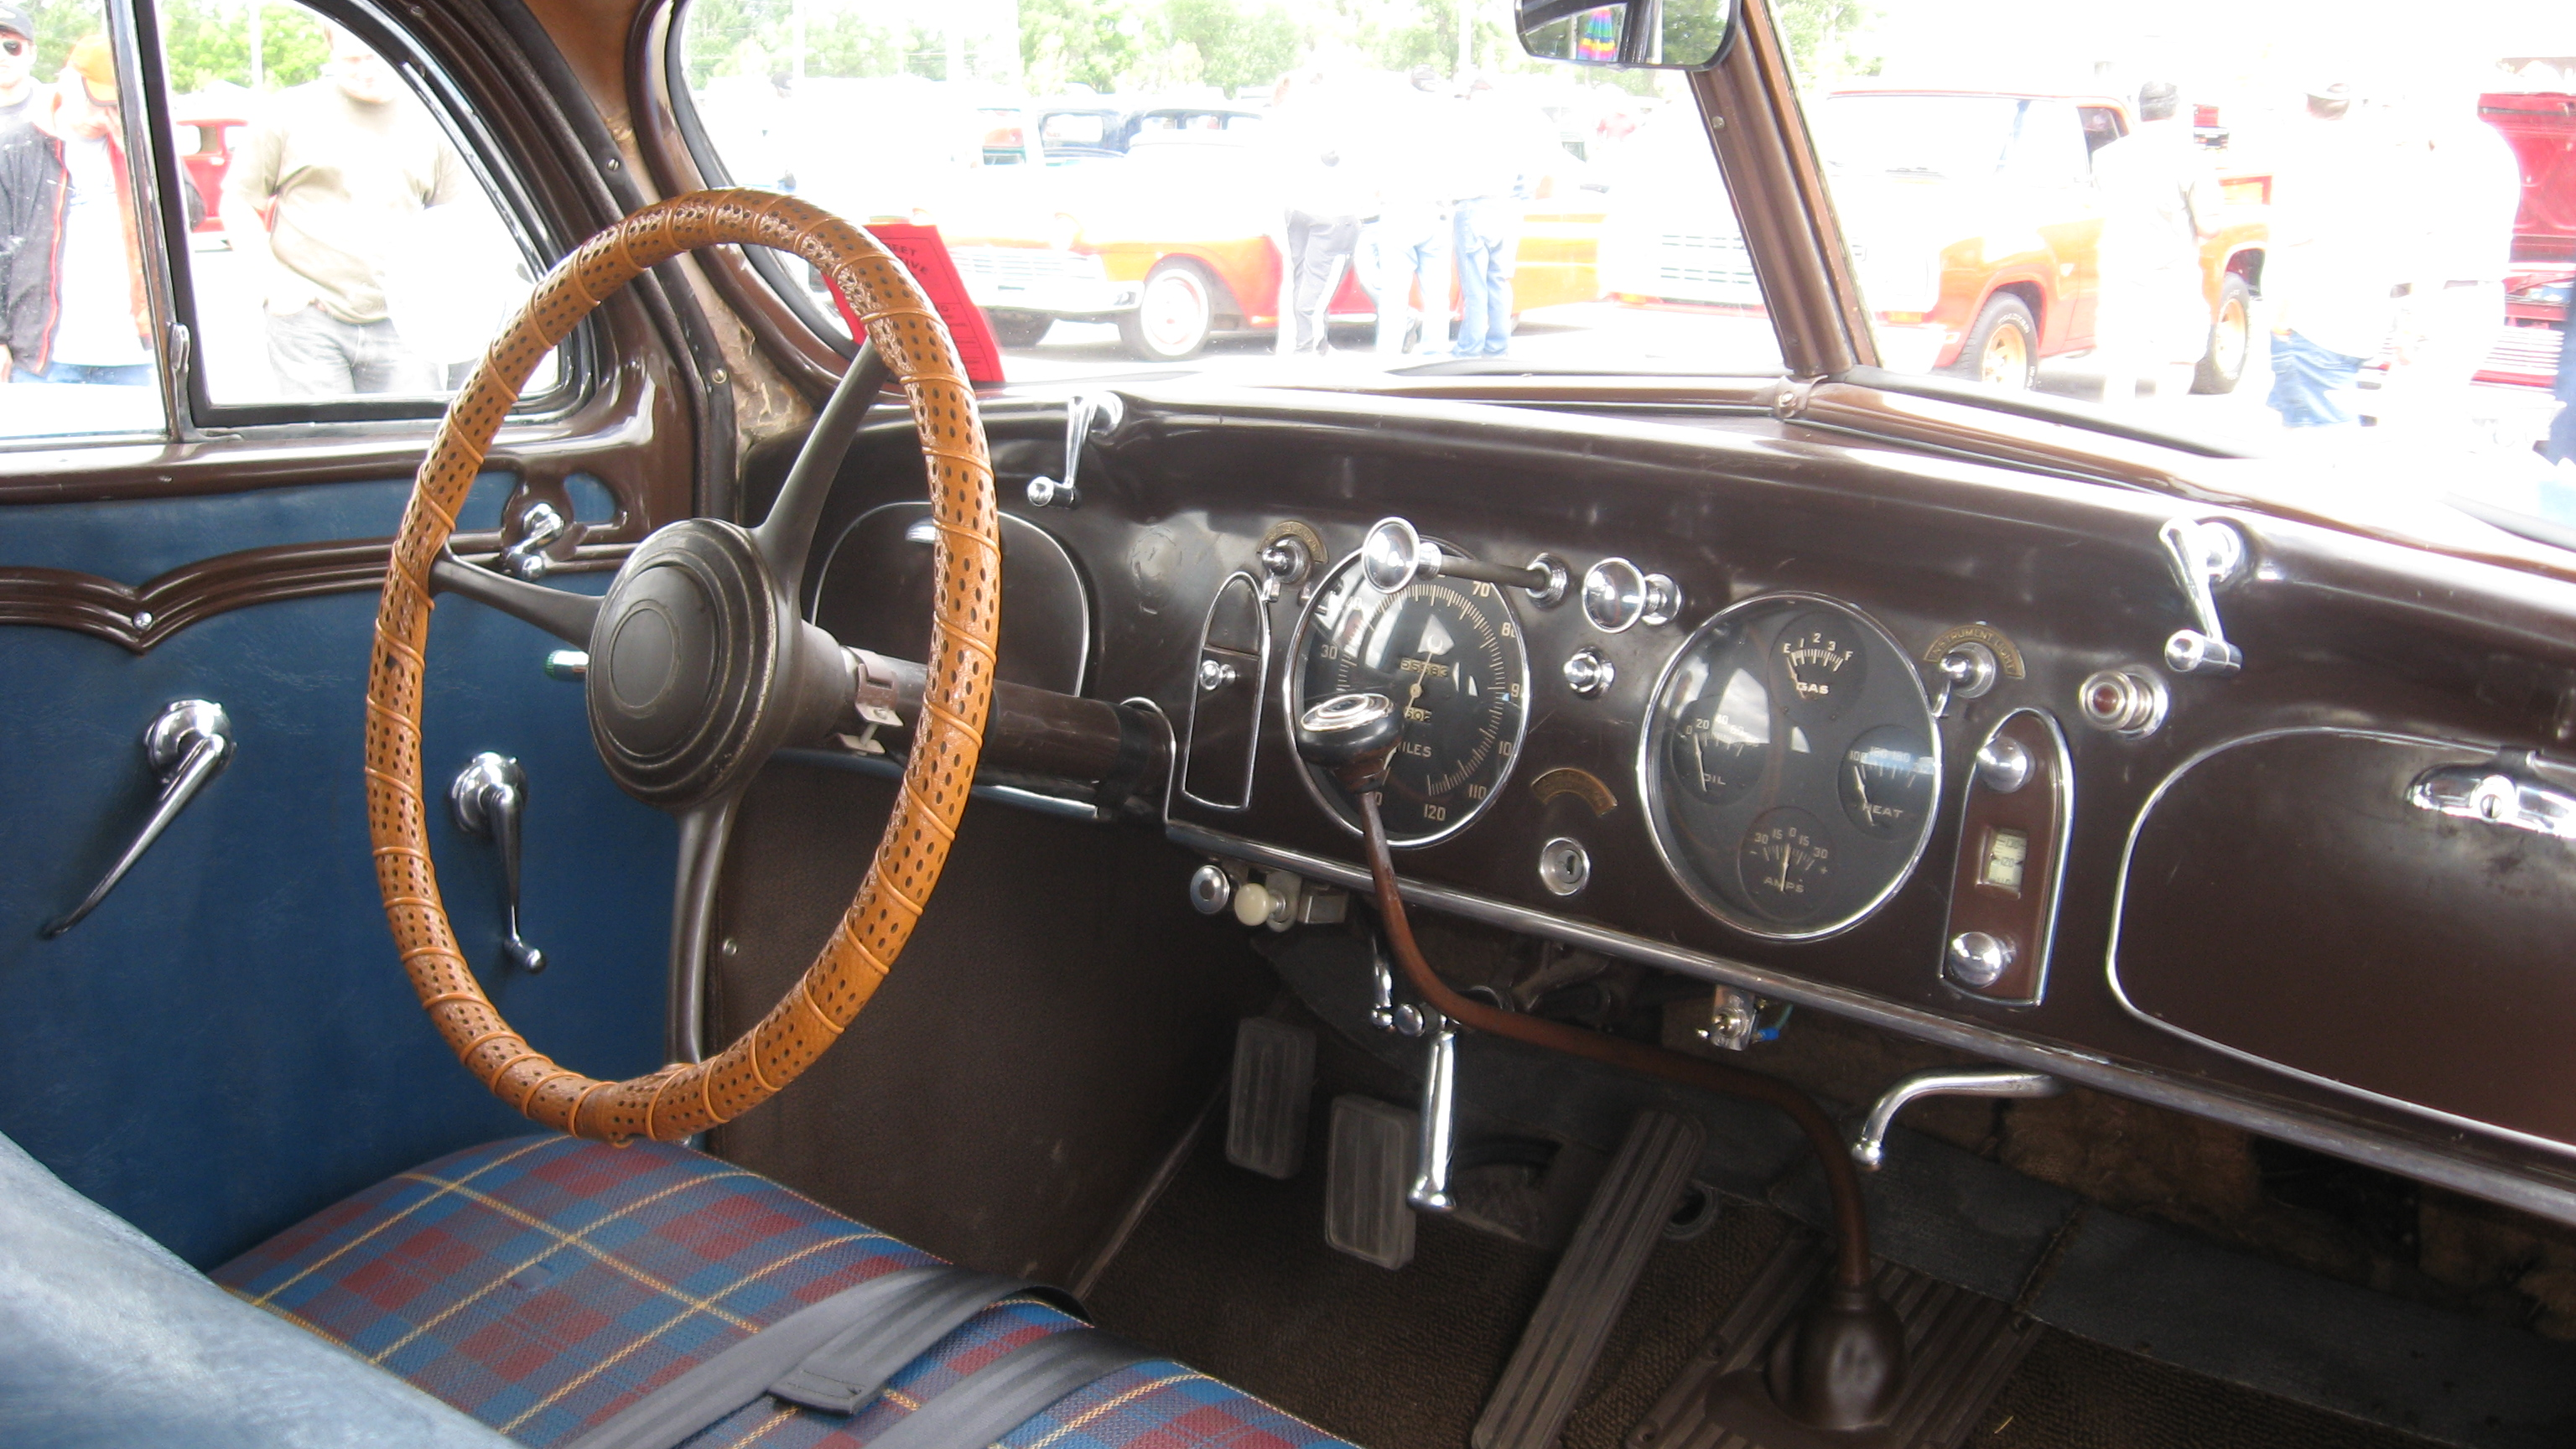 %2734_chrysler_airflow_interior.JPG